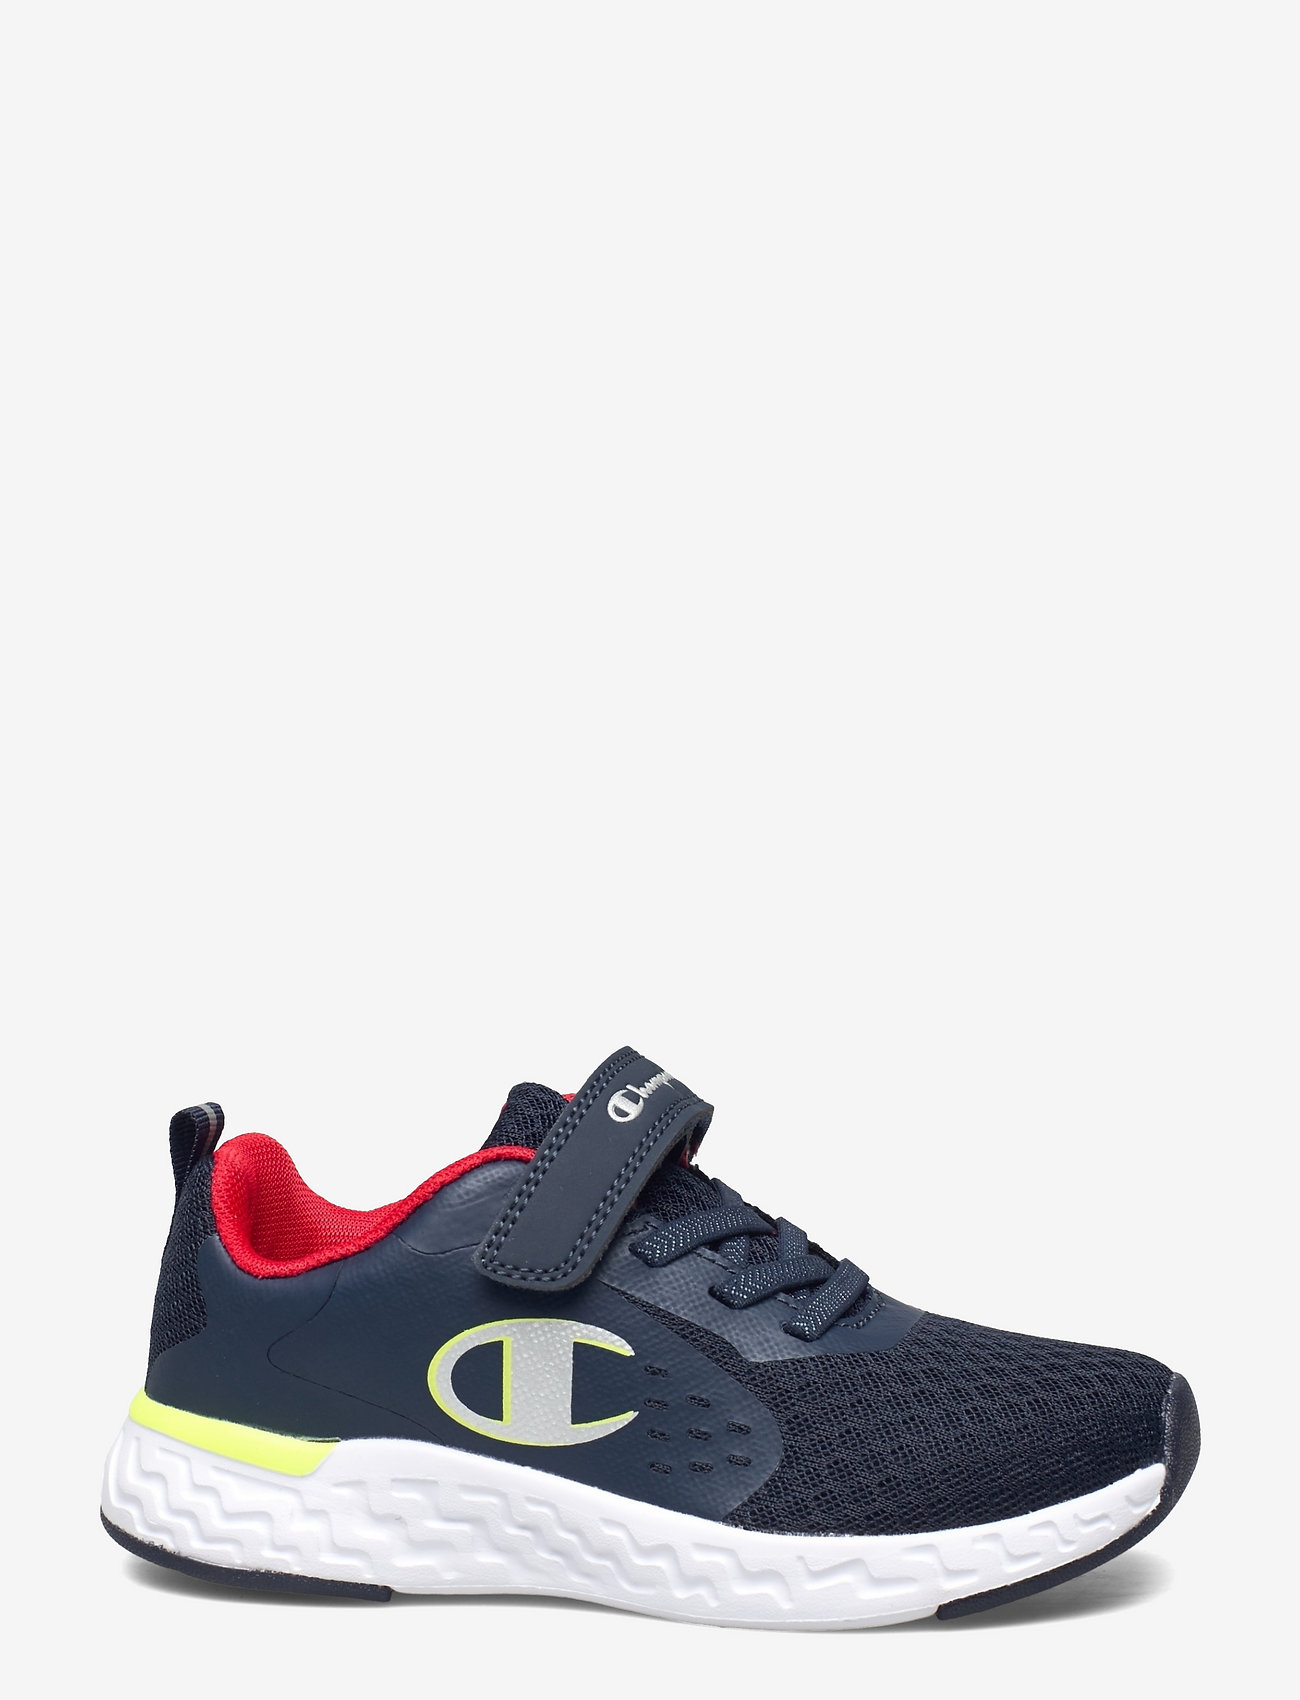 Champion - Low Cut Shoe BOLD B PS - niedriger schnitt - sky captain a - 1